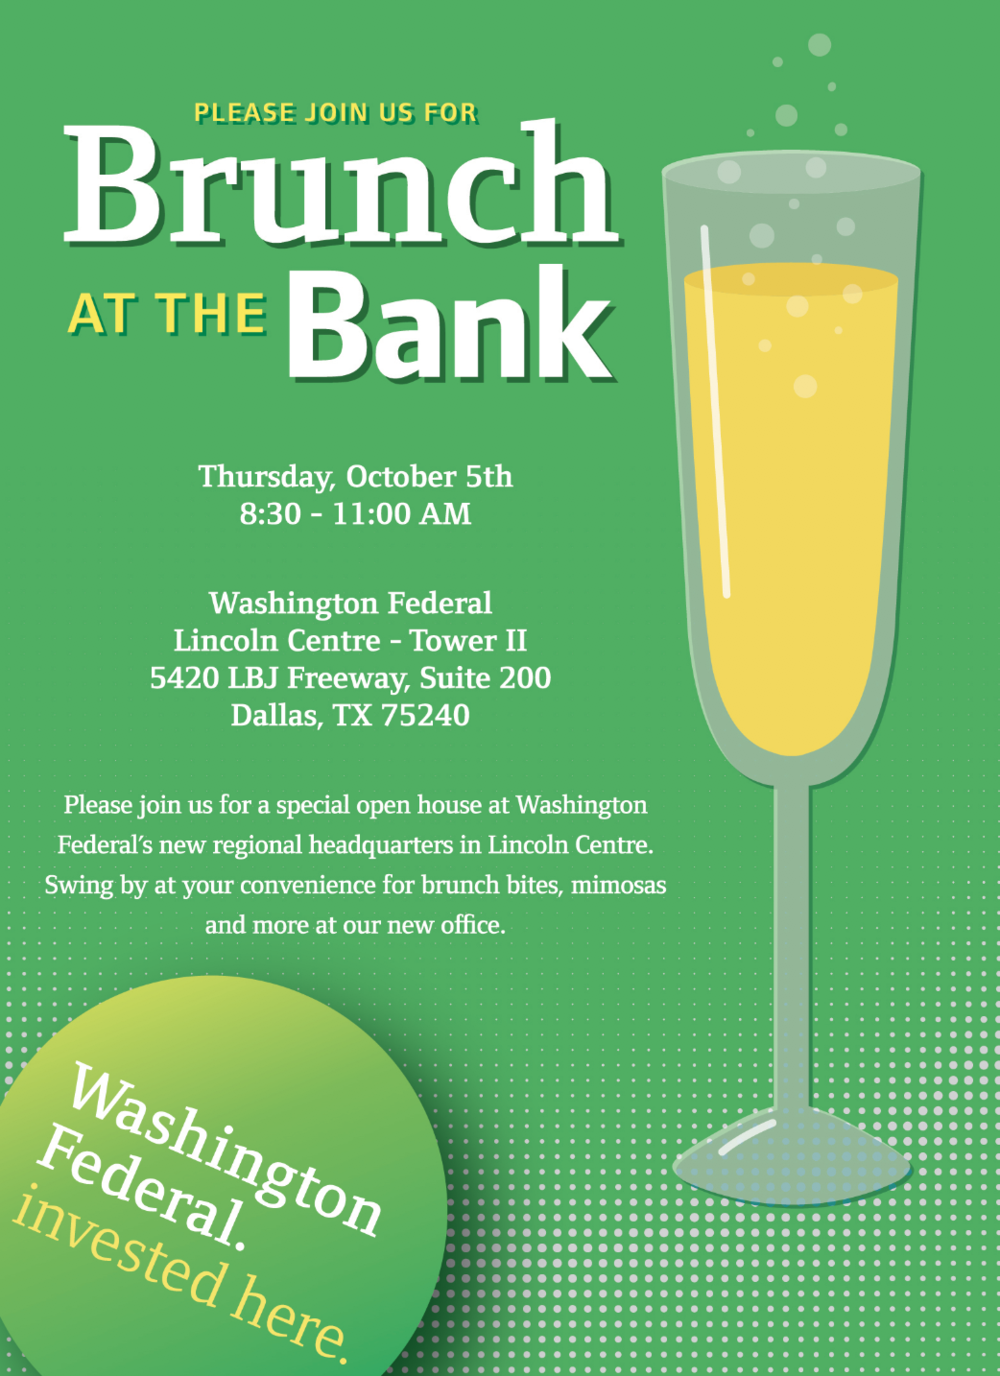 Brunch at the Bank Invitation